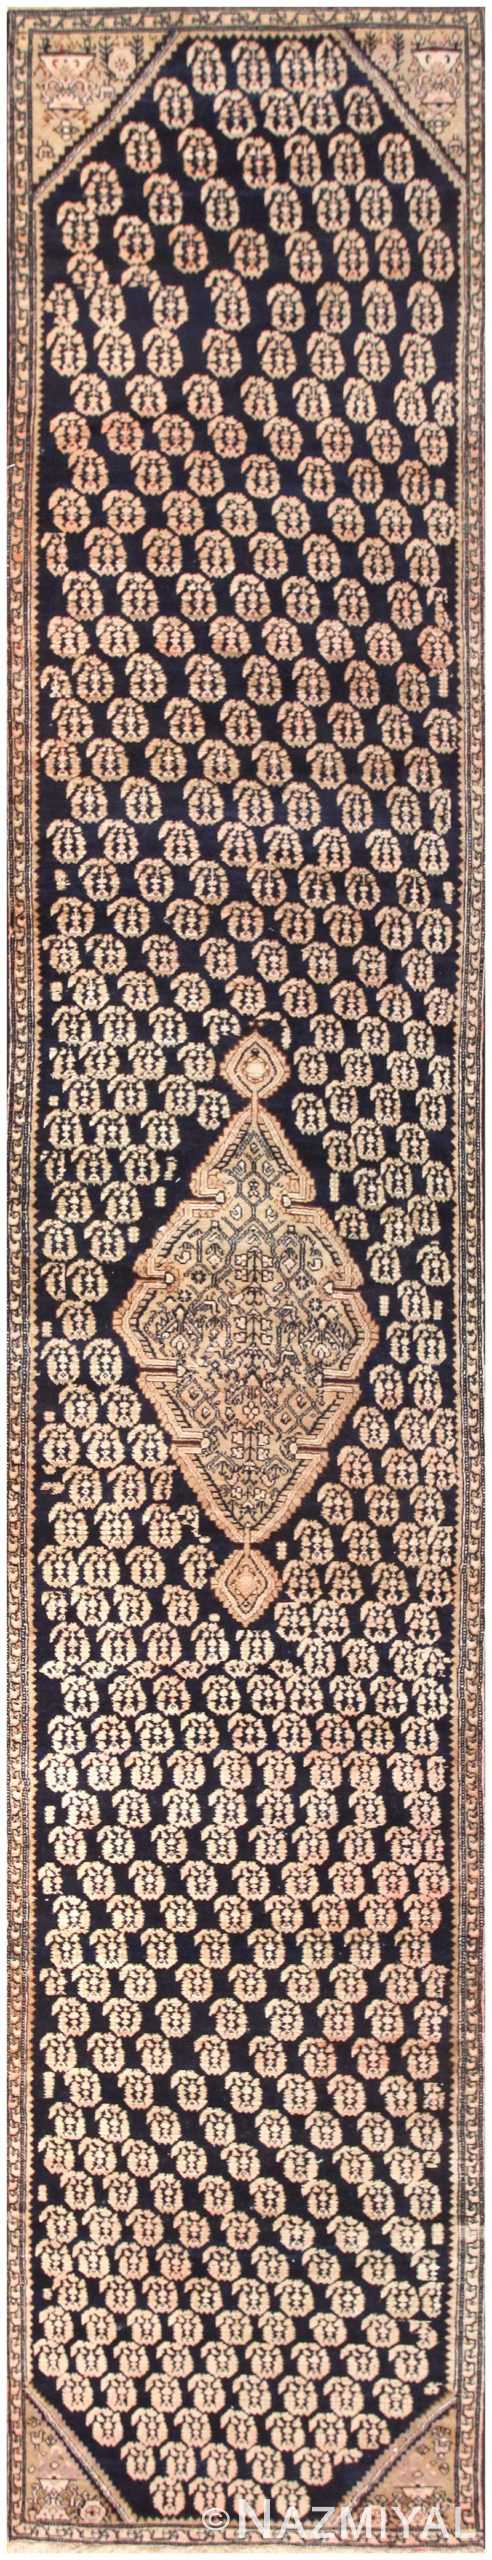 Antique Paisley Design Persian Malayer Runner Rug 50419 Nazmiyal